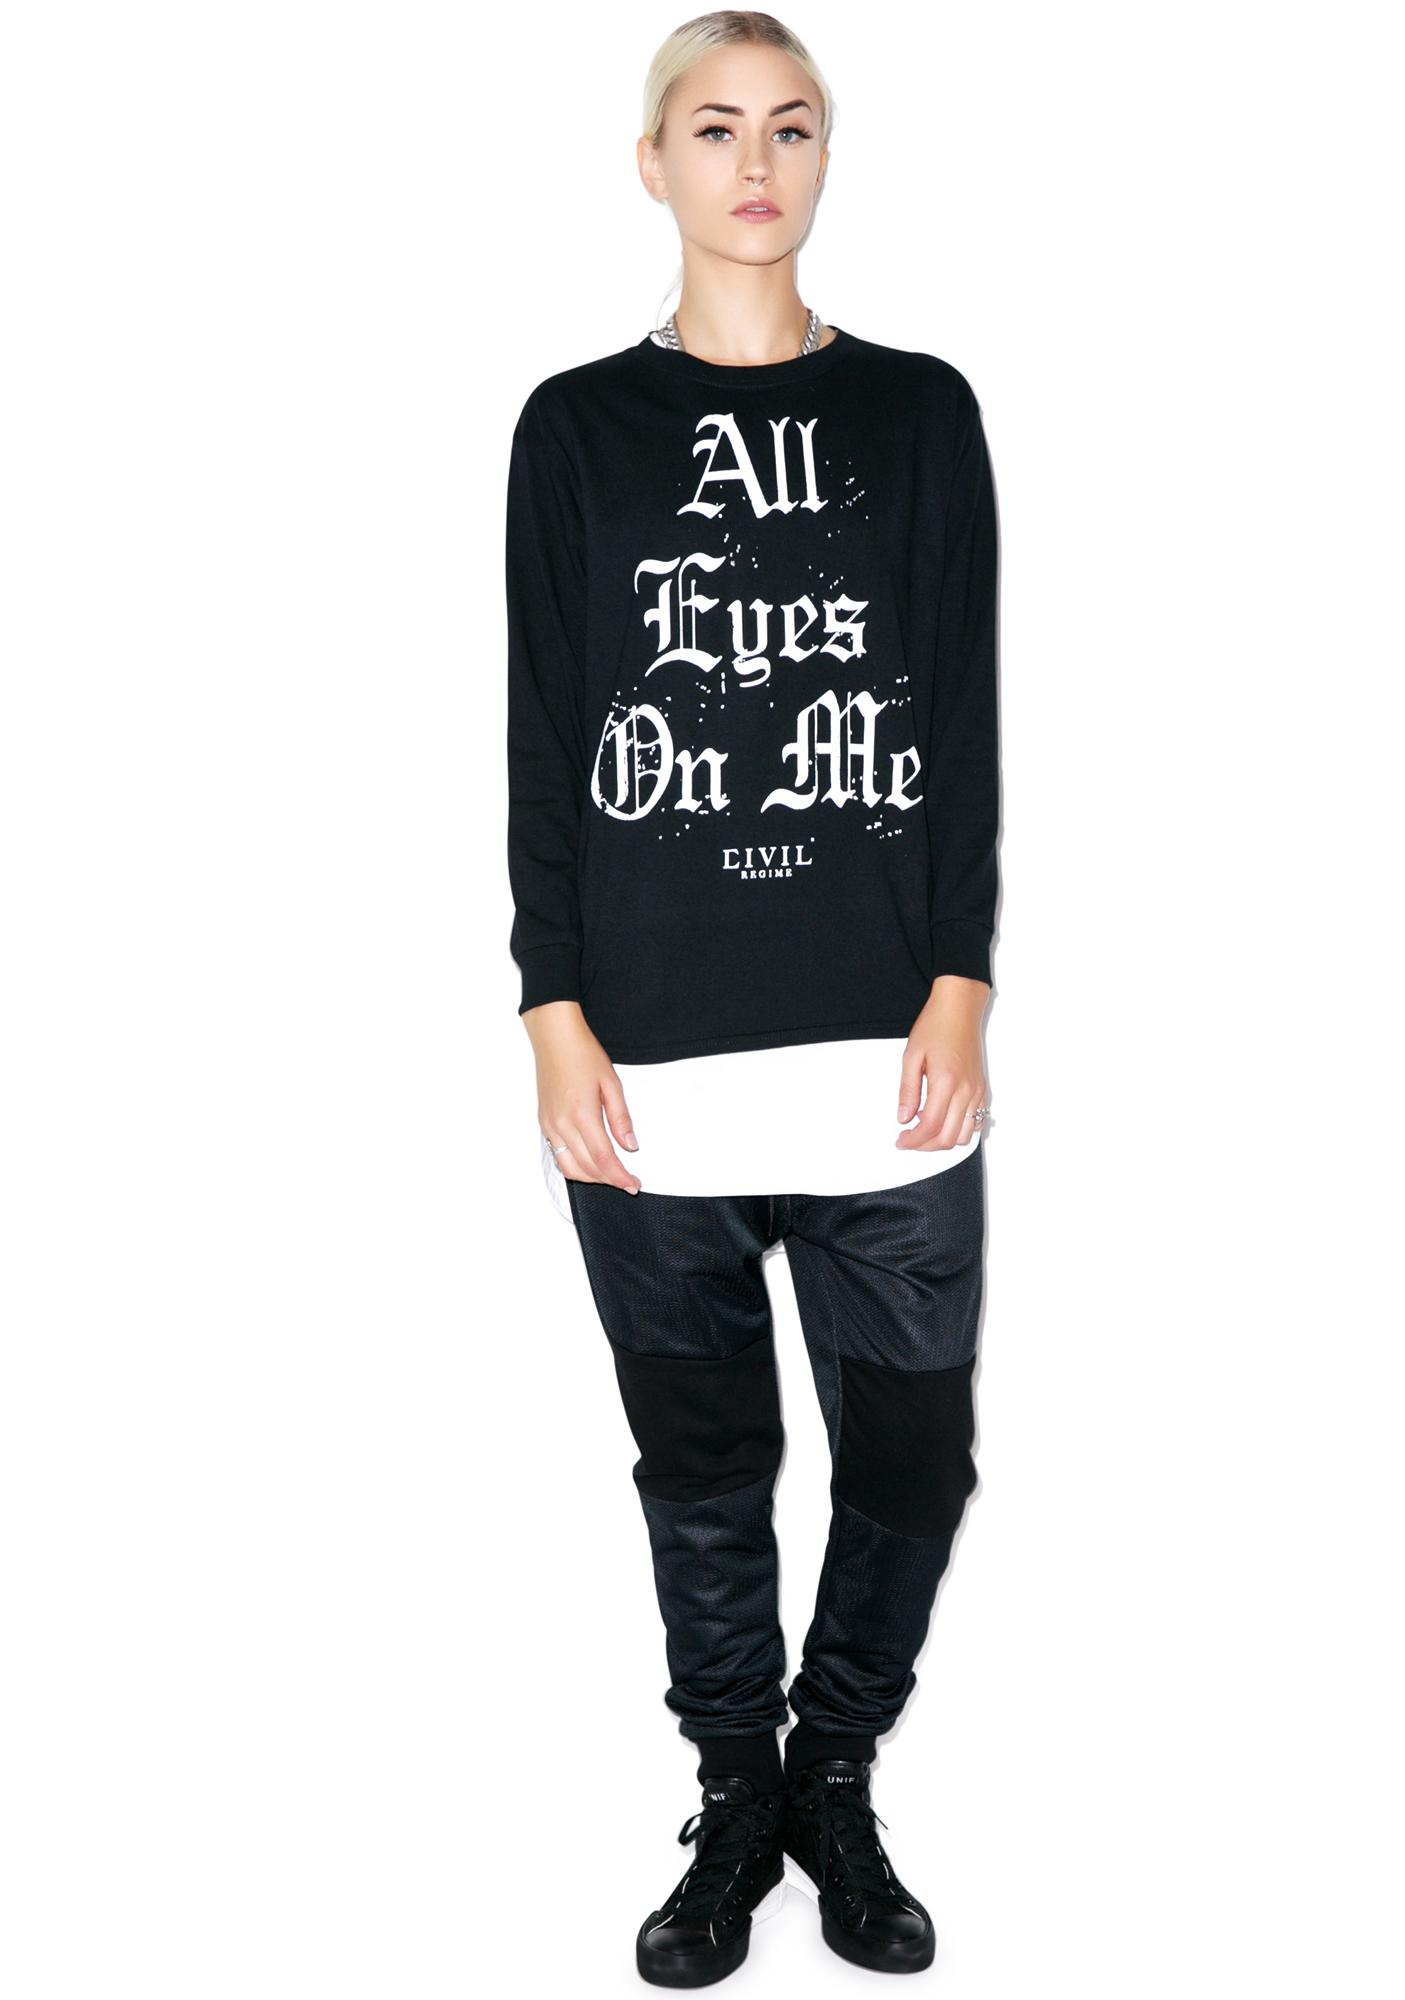 Civil Clothing All Eyes On Me Long Sleeve